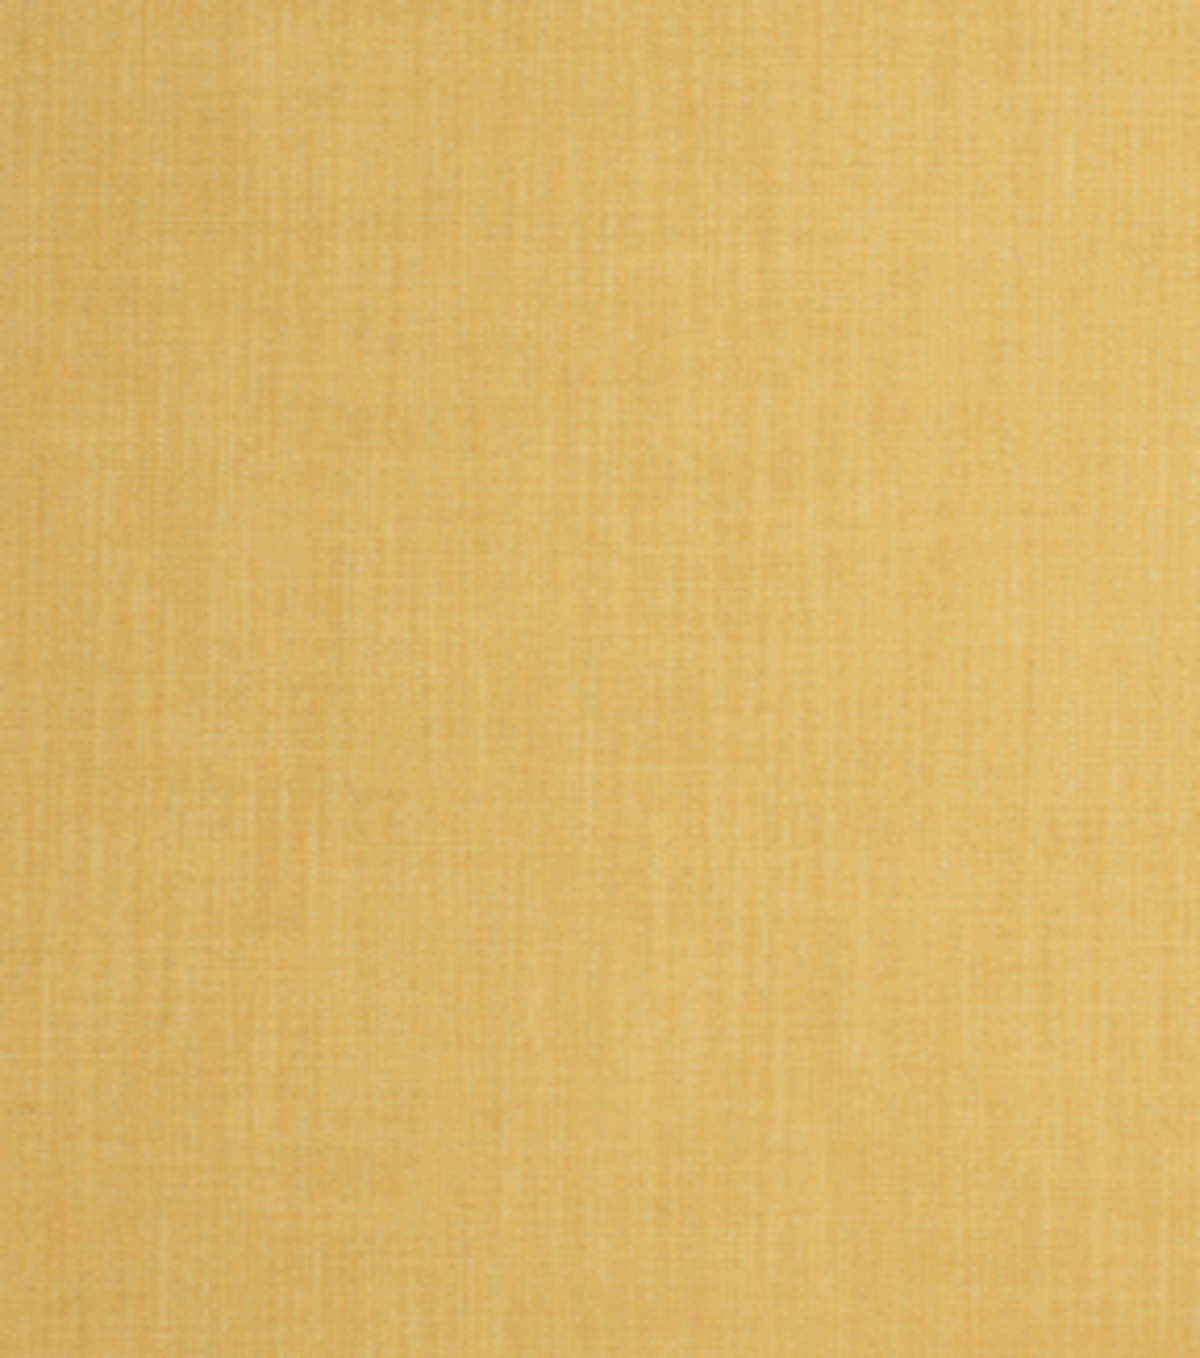 Home Decor 8\u0022x8\u0022 Fabric Swatch-Signature Series Media Buttercup